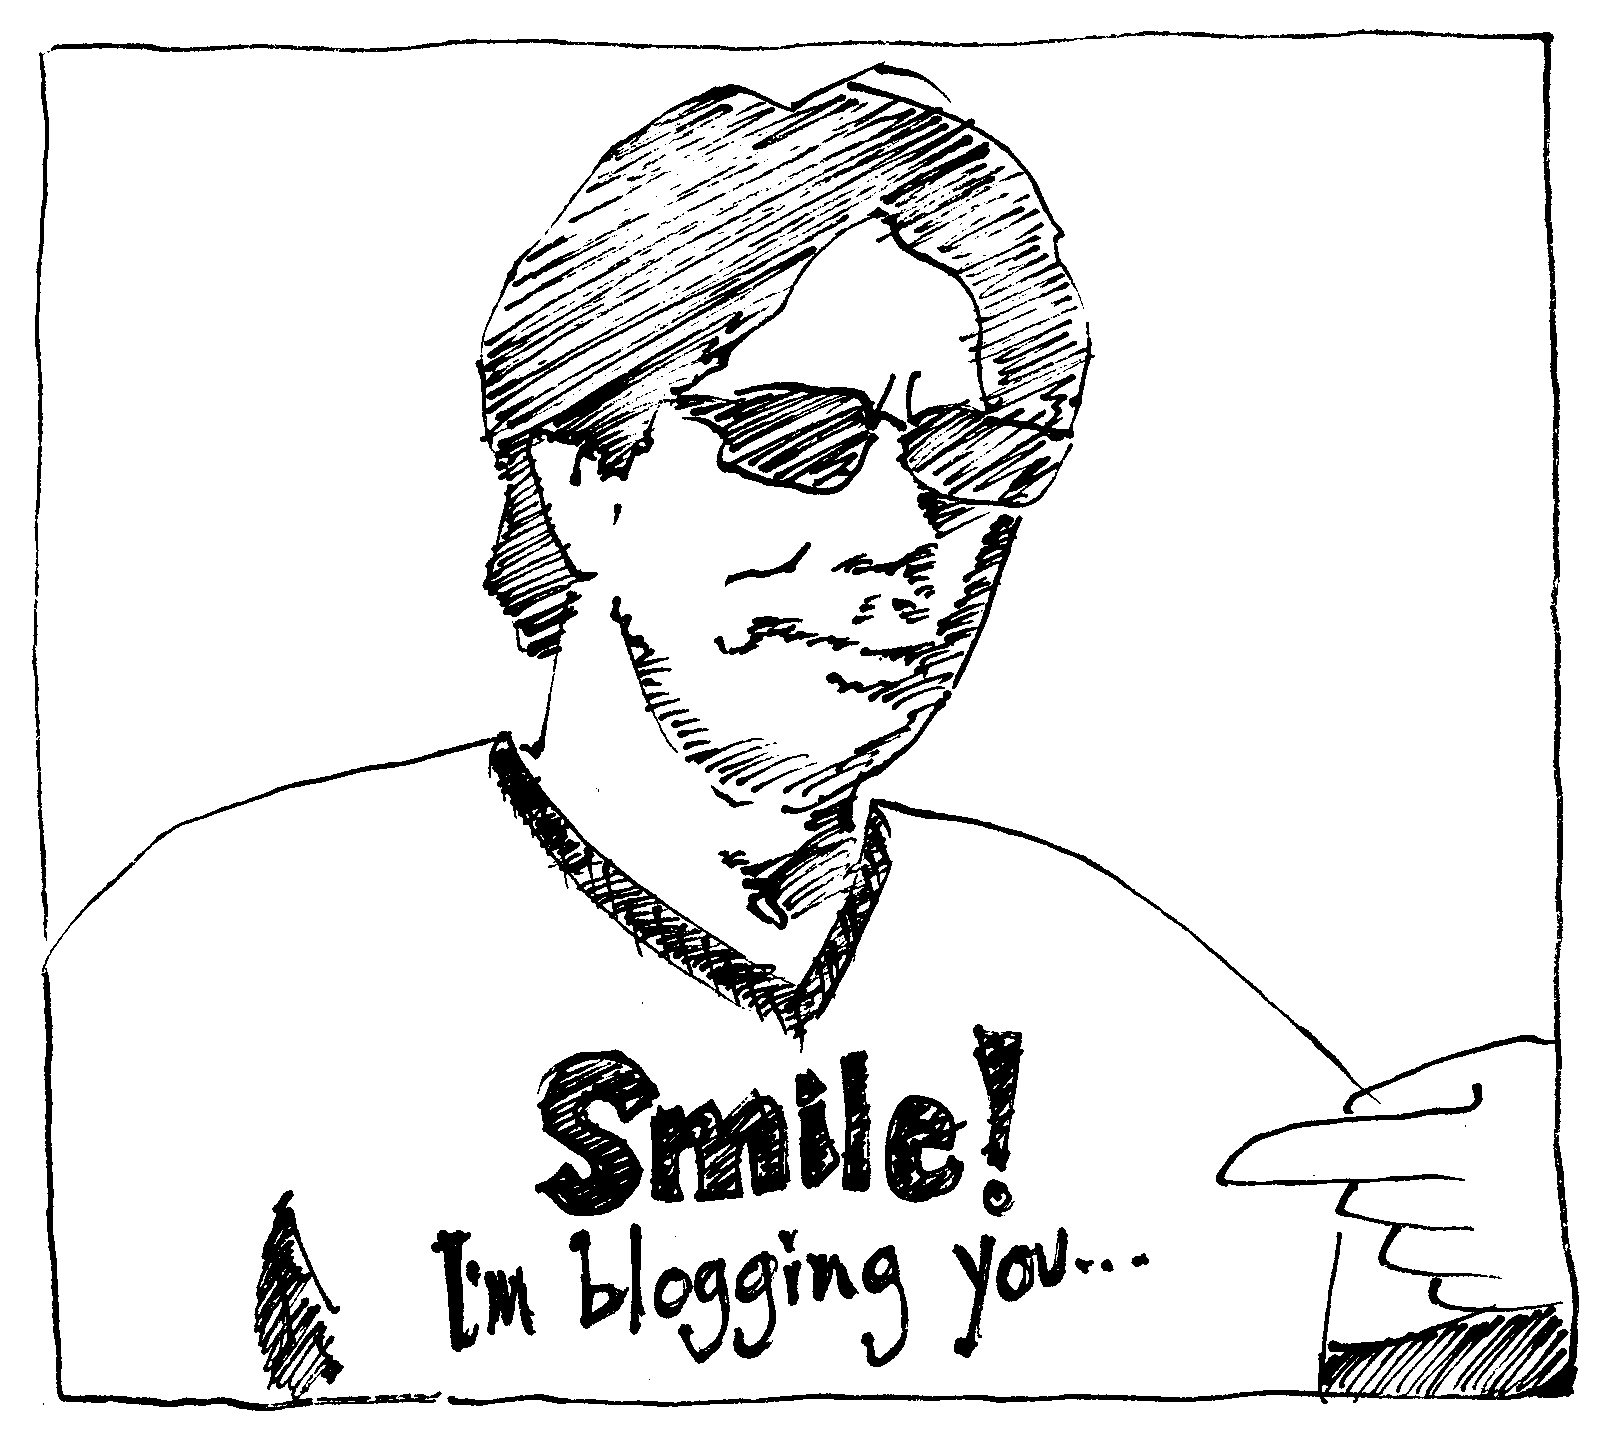 Smile! I'm blogging you... (image of and by virtualDavis)